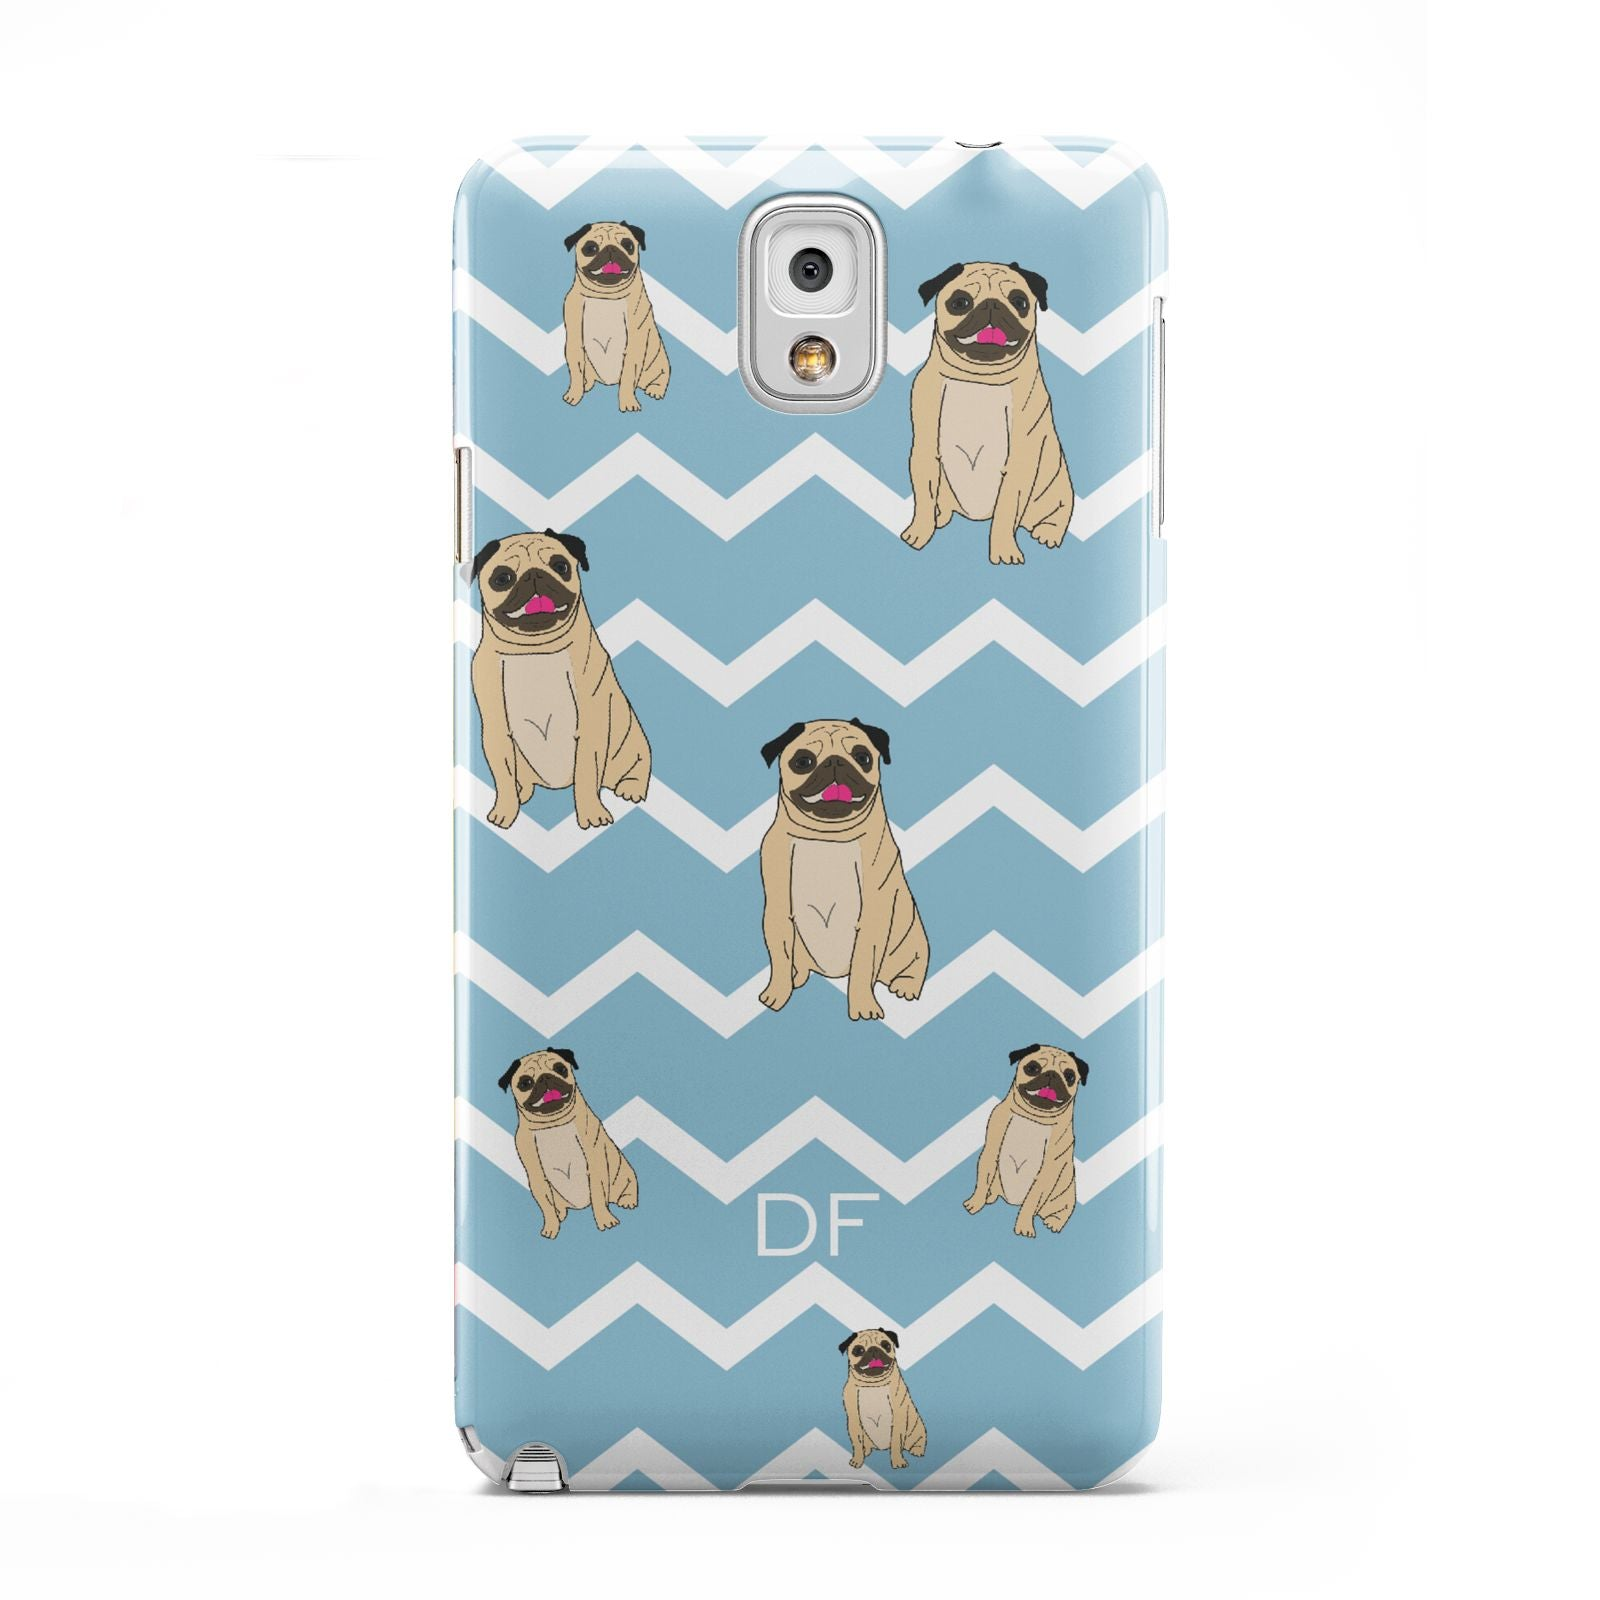 Personalised Pug Initials Samsung Galaxy Note 3 Case